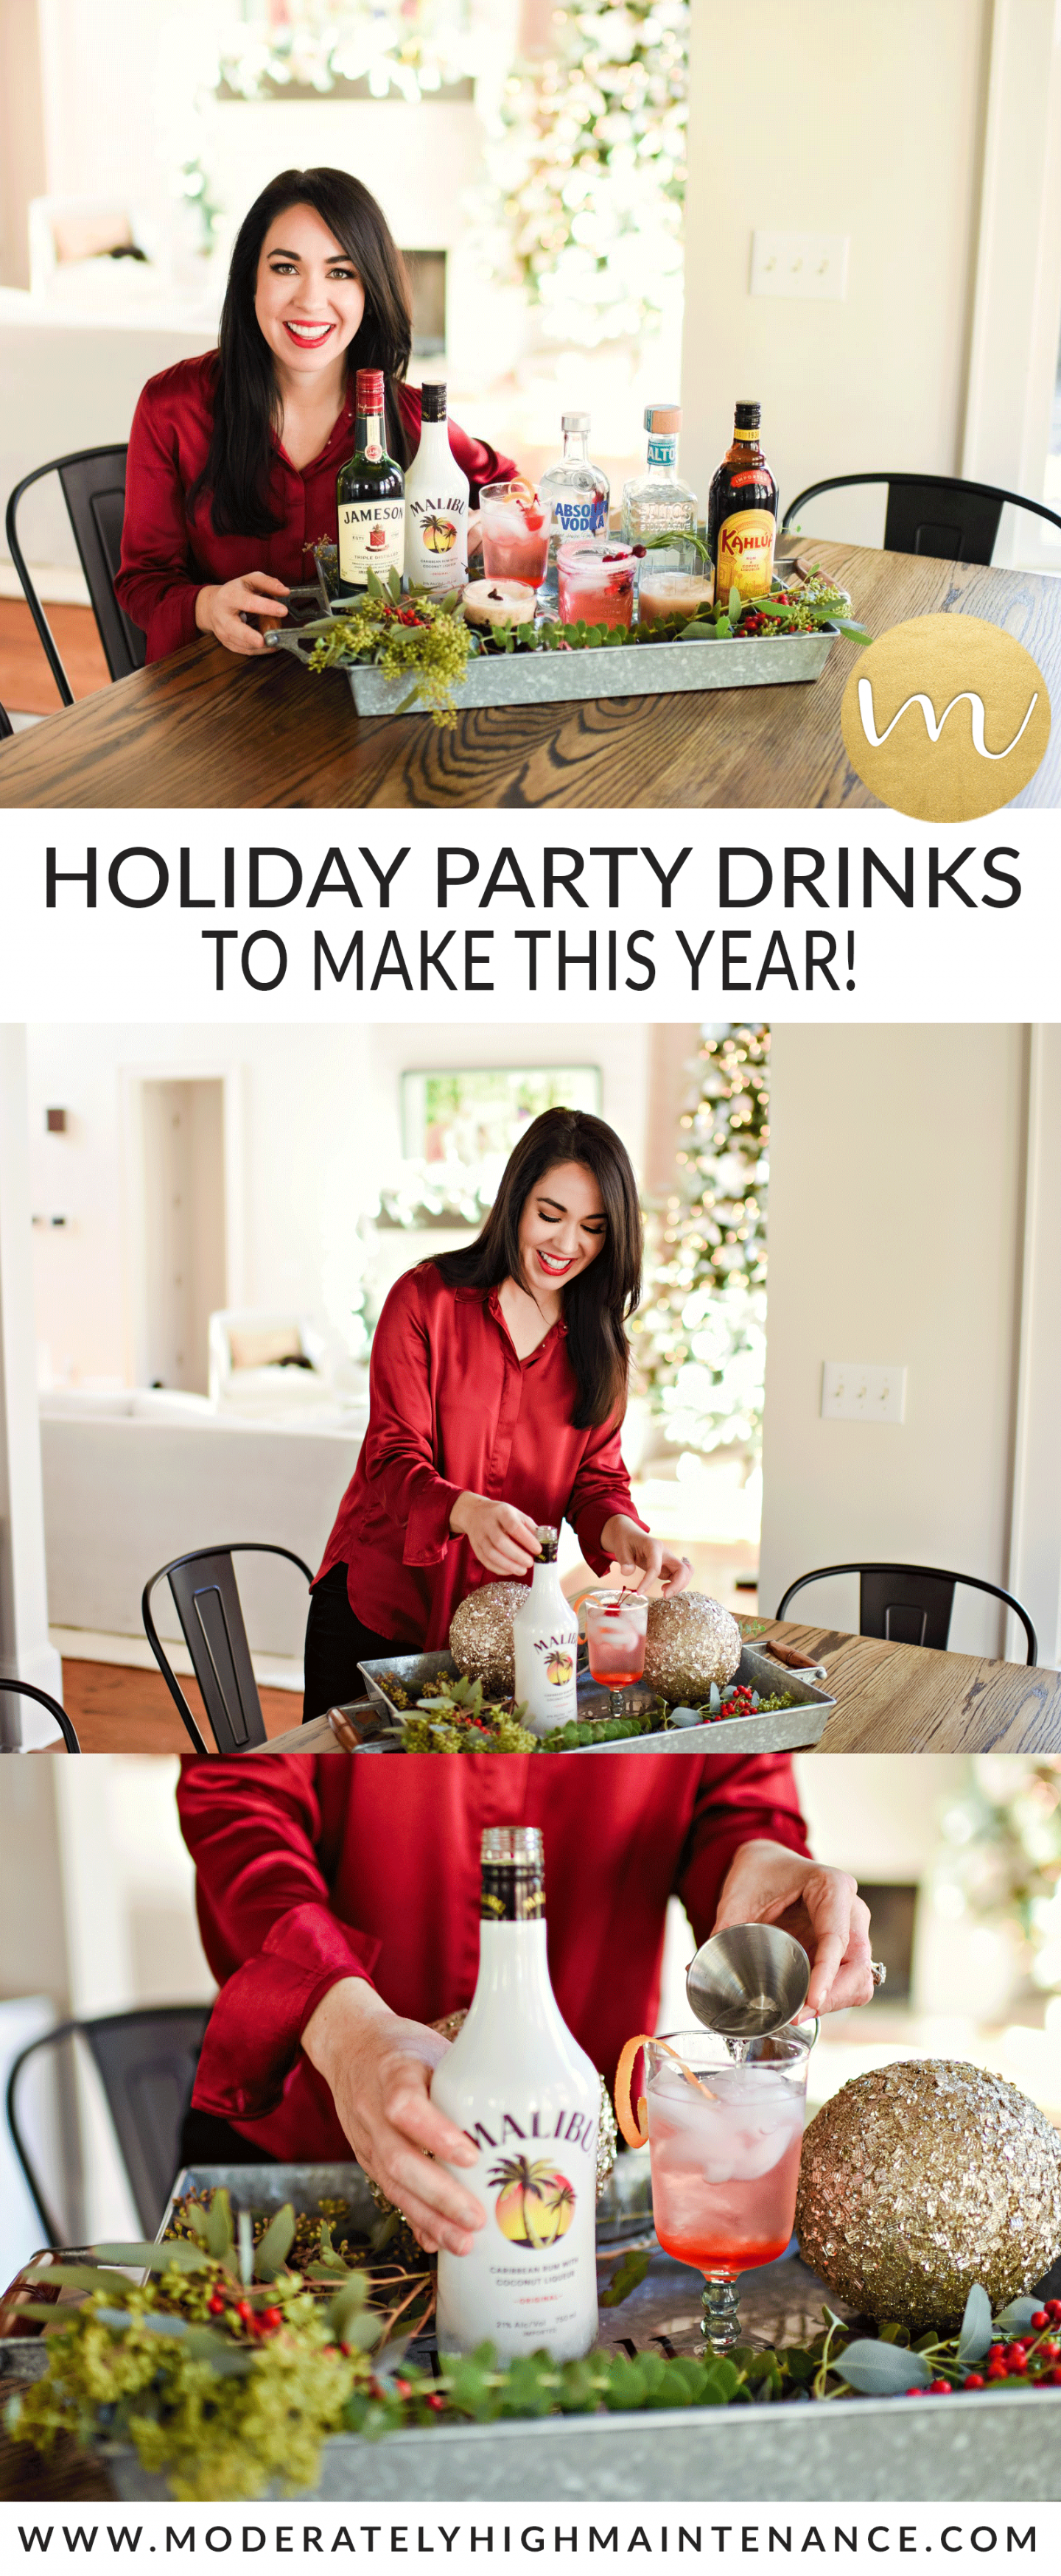 Here are four holiday party drinks featuring five spirits to make this year that are sure to please all of the guests on your list!